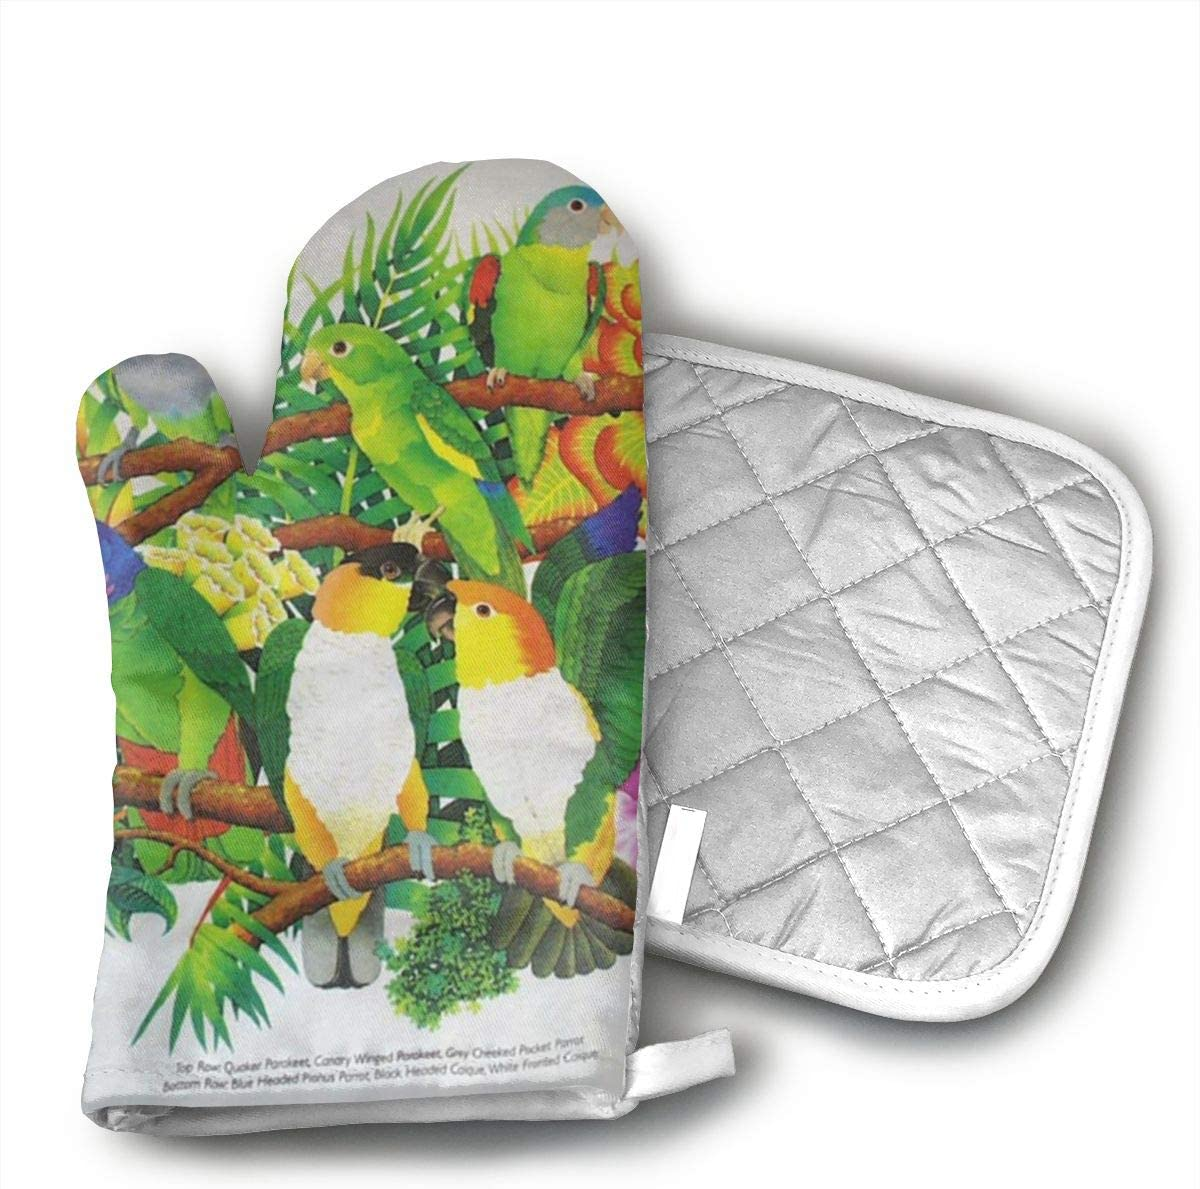 Ydsgjds Parrots Birds Oven Mitts and BBQ Gloves Pot Holders, Heat Resistant Mitts for Finger Hand Wrist Protection with Inner Lining, Kitchen Gloves for Grilling Machine Baking Grilling with Non-Slip